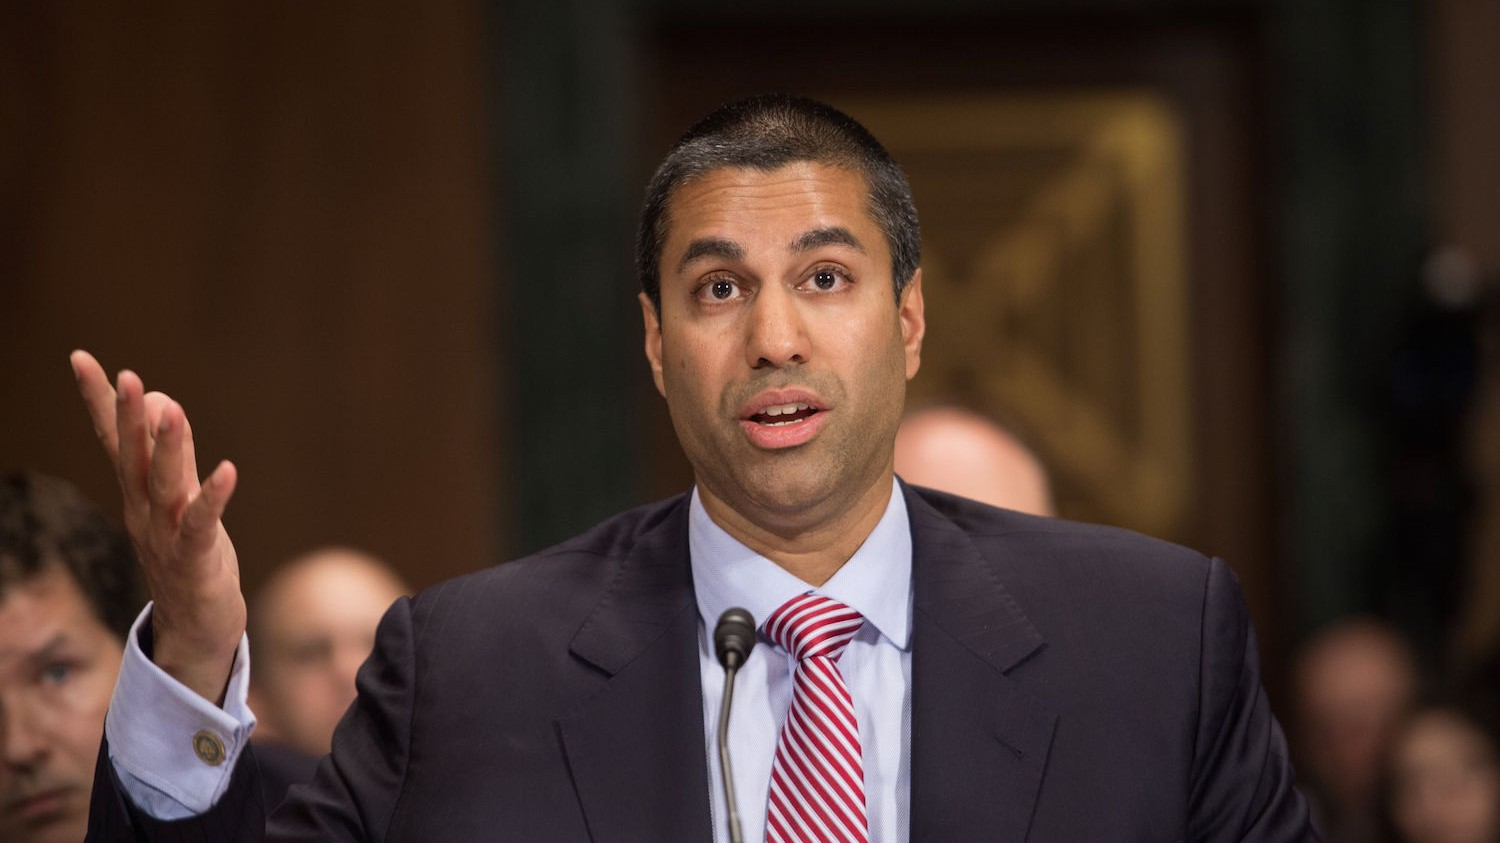 Big Telecom is Ecstatic About Trump's New FCC Boss Ajit Pai